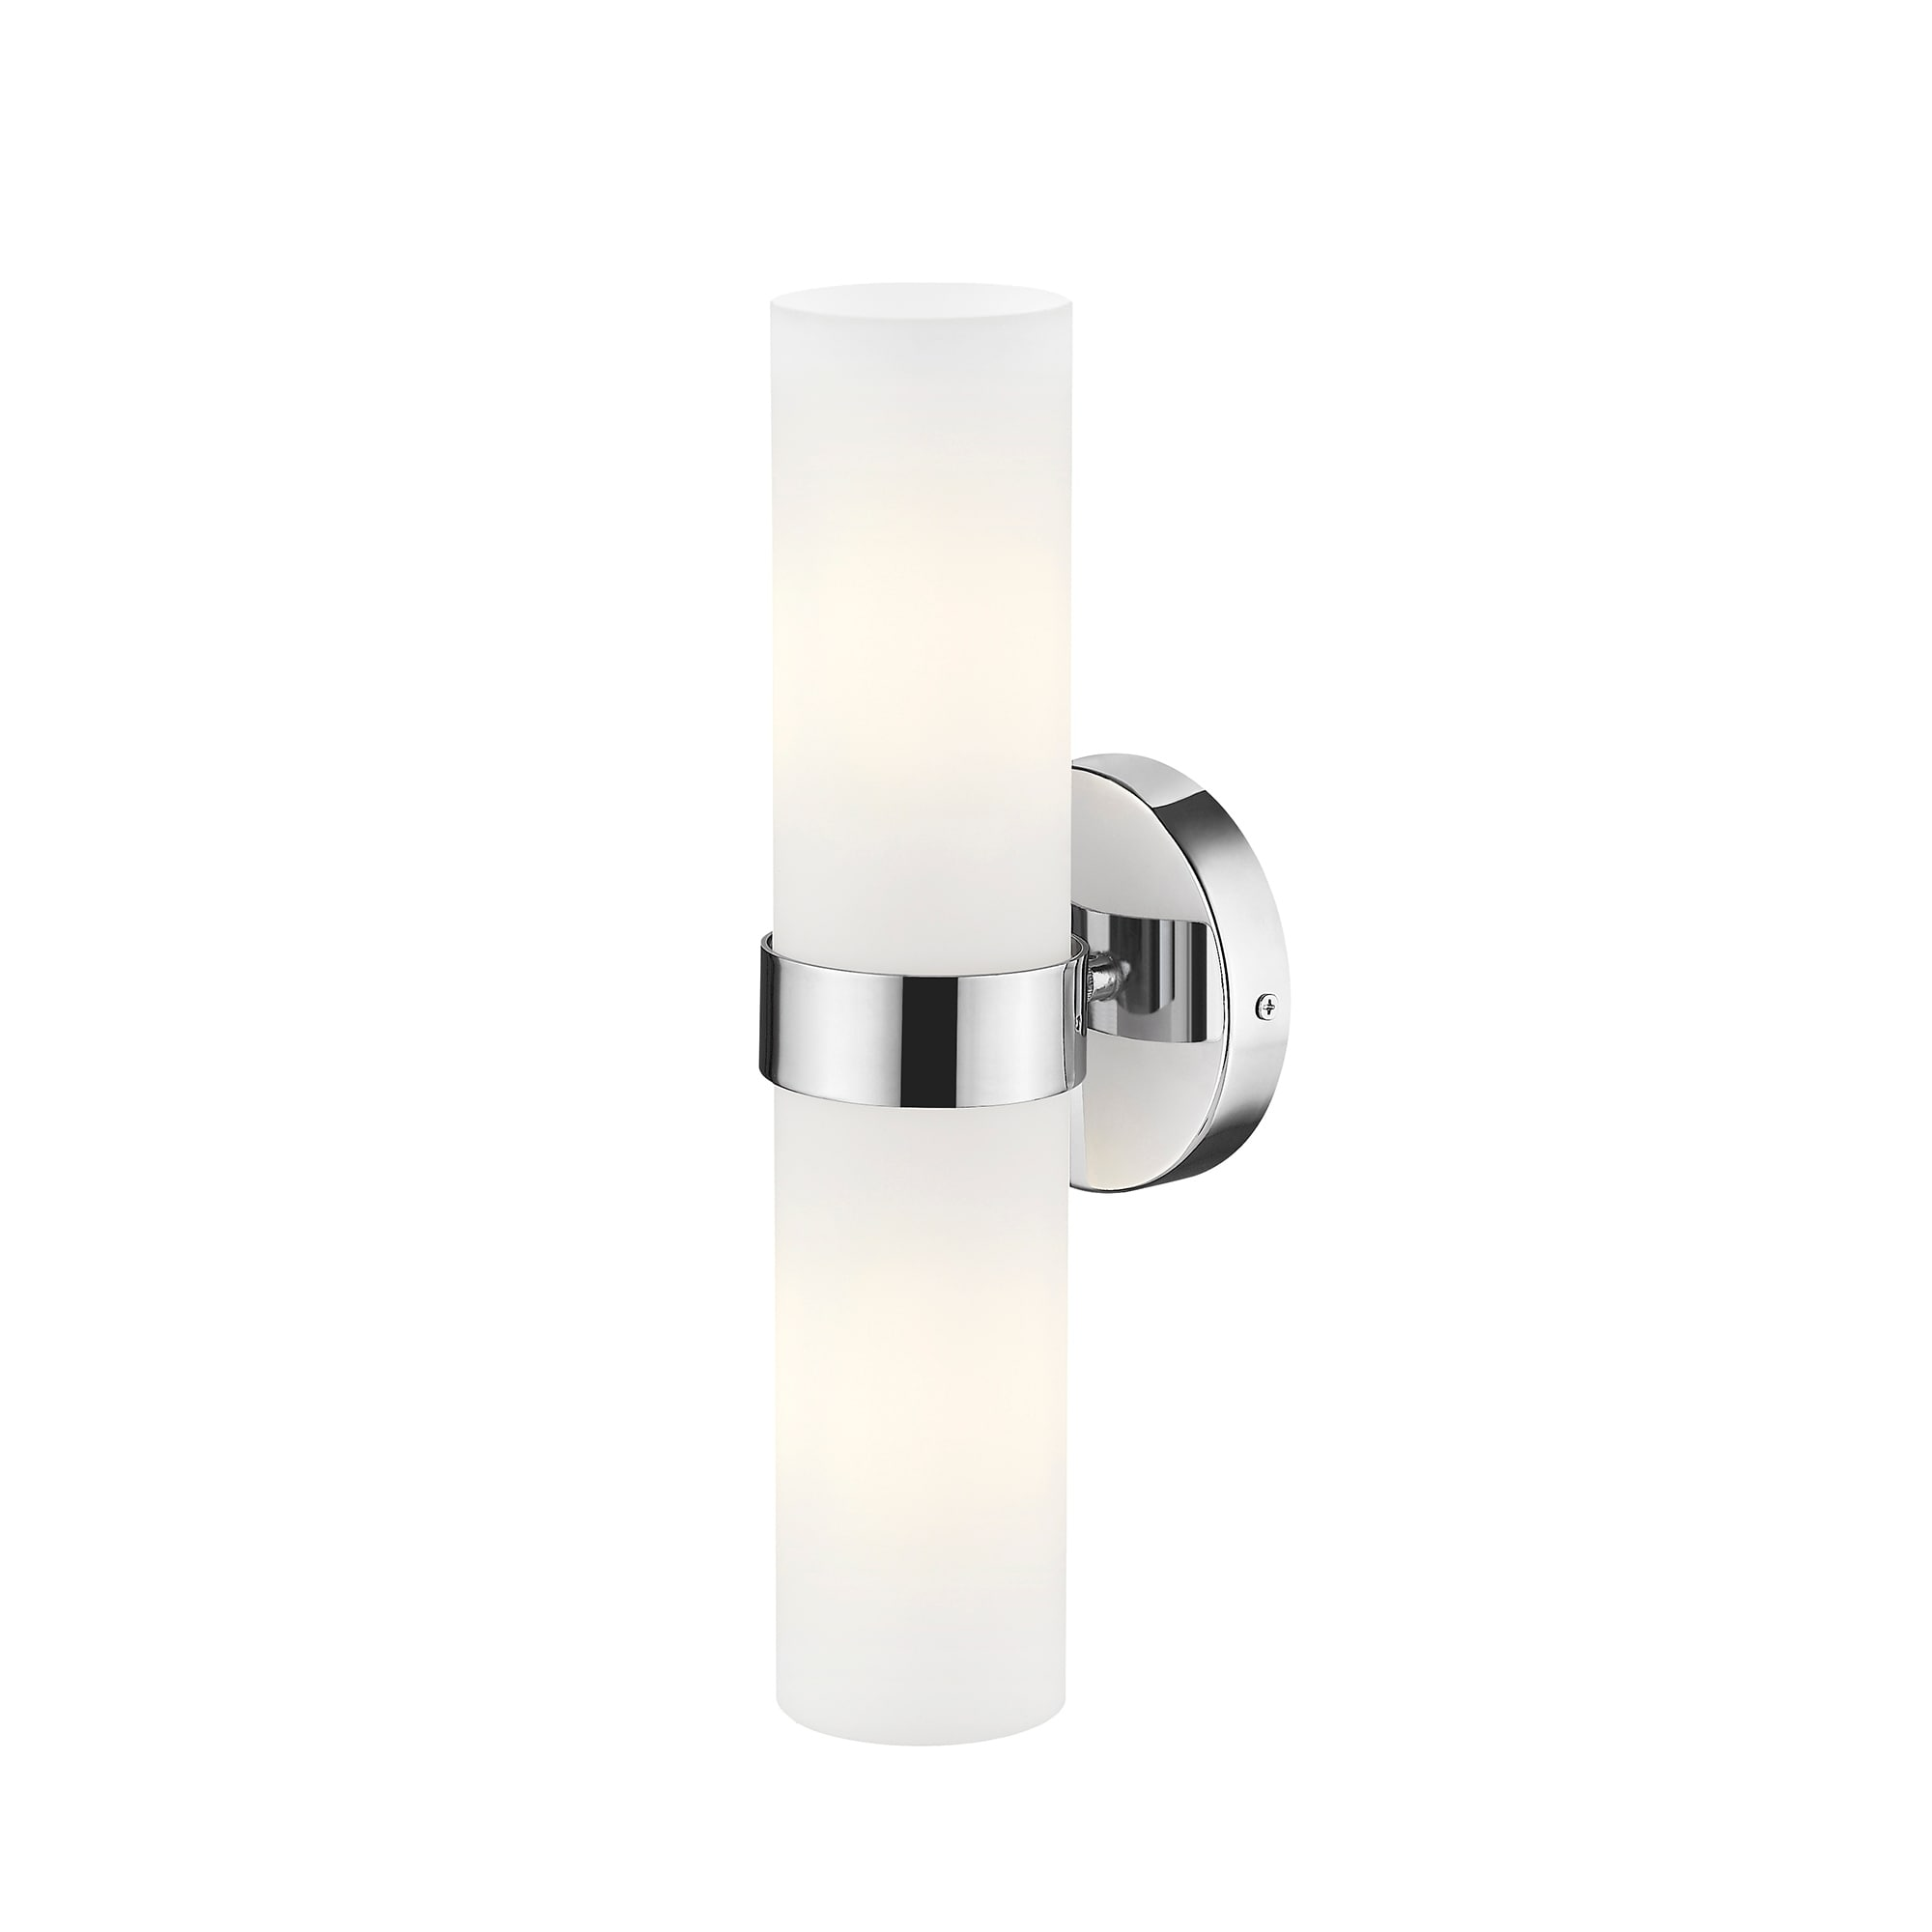 Image of: Shop Black Friday Deals On Ove Decors Romilly 2 Light Led Cylinder Wall Sconce In Chrome 14 94 H In Overstock 30925658